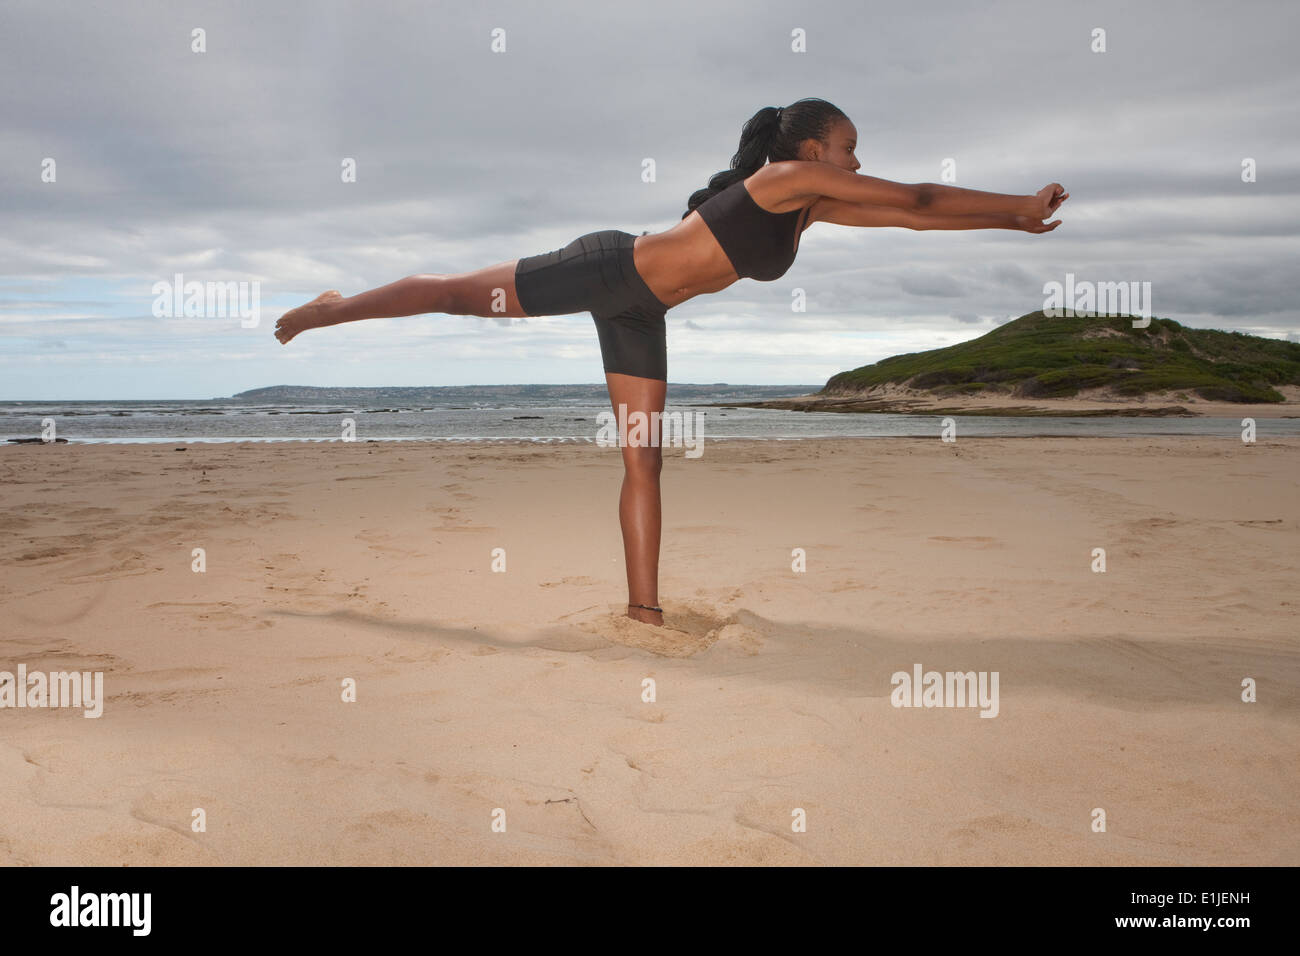 Young woman practicing yoga on one leg at beach - Stock Image